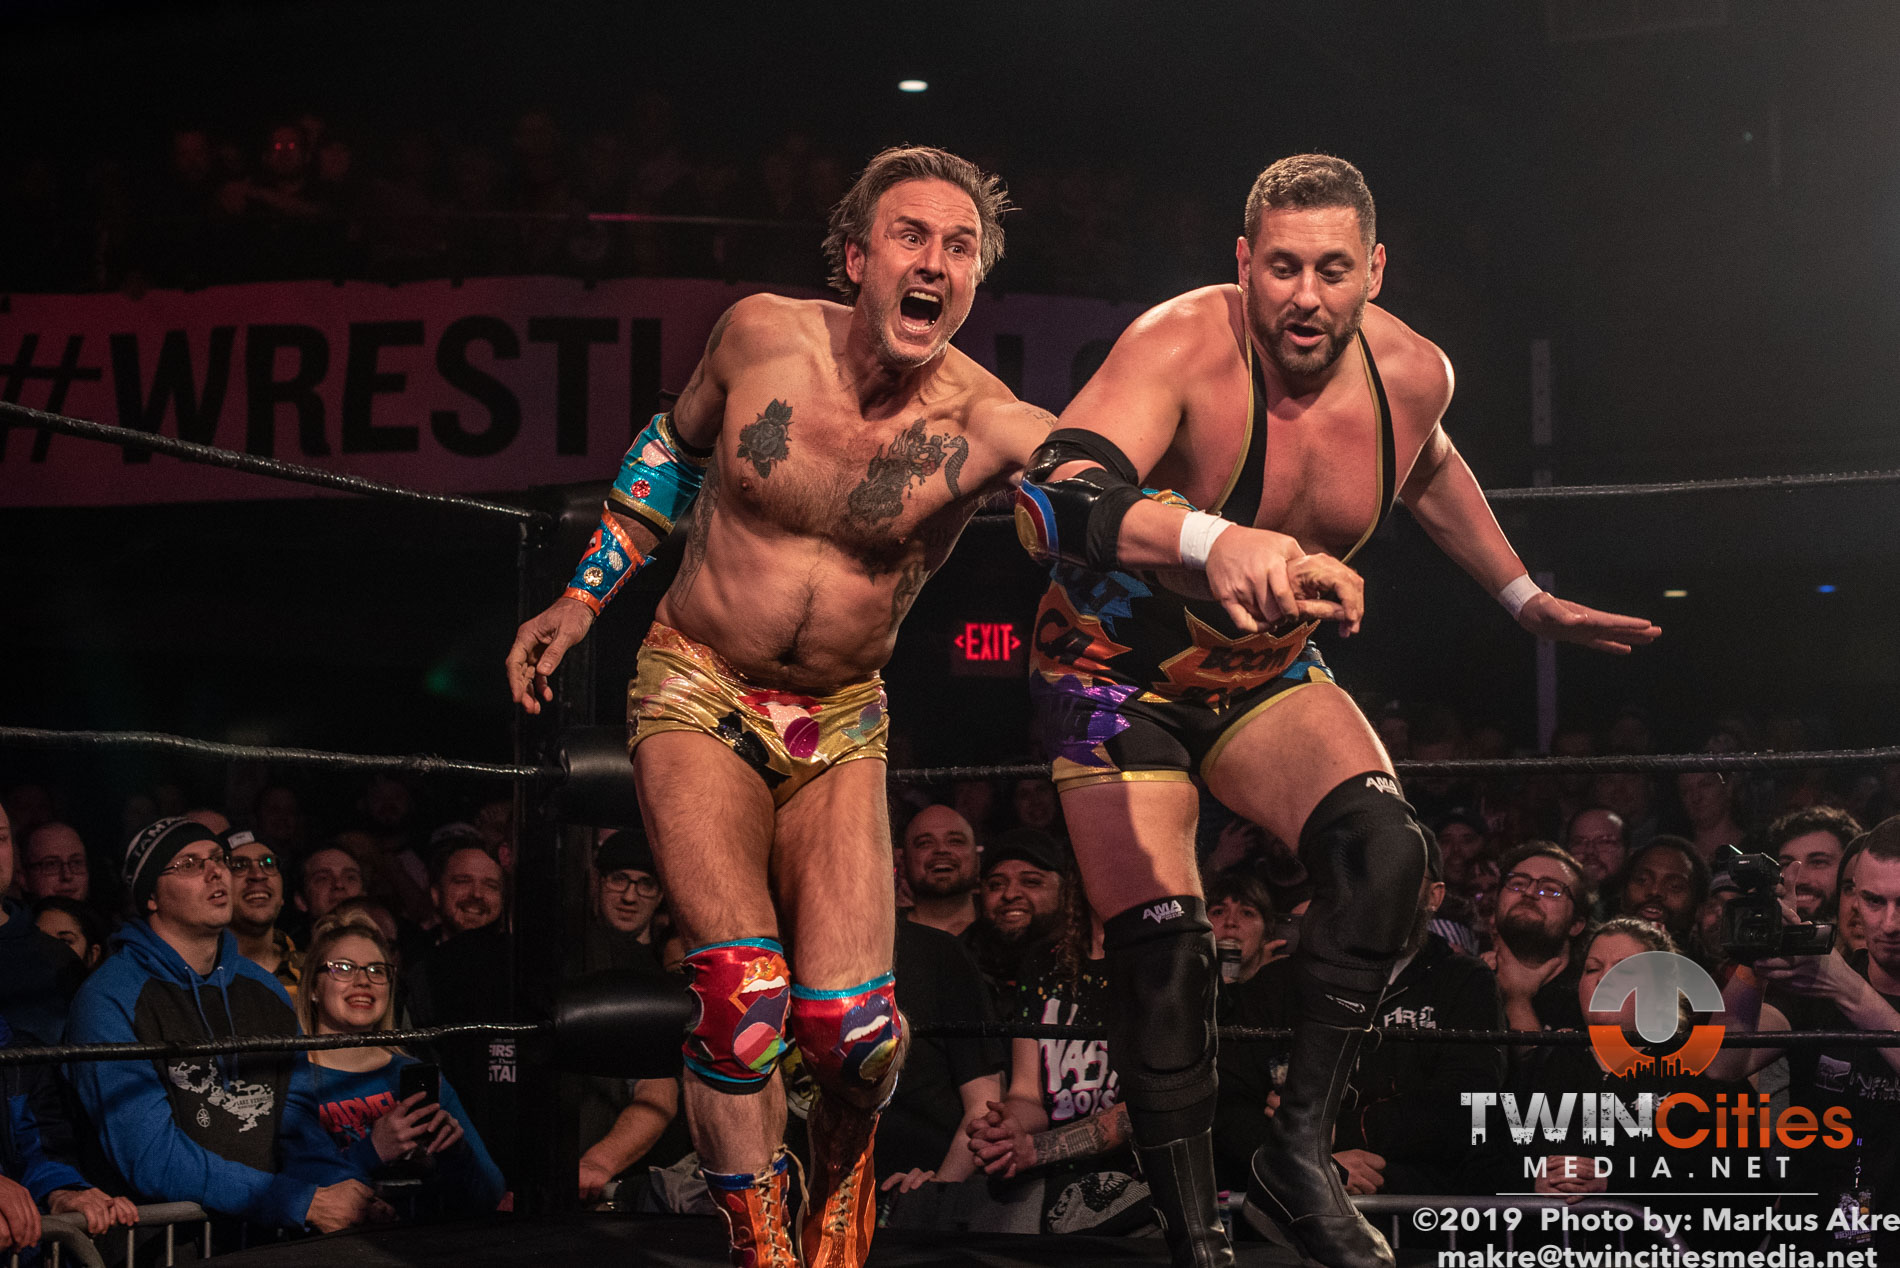 Wrestlepalooza - Match 3-7